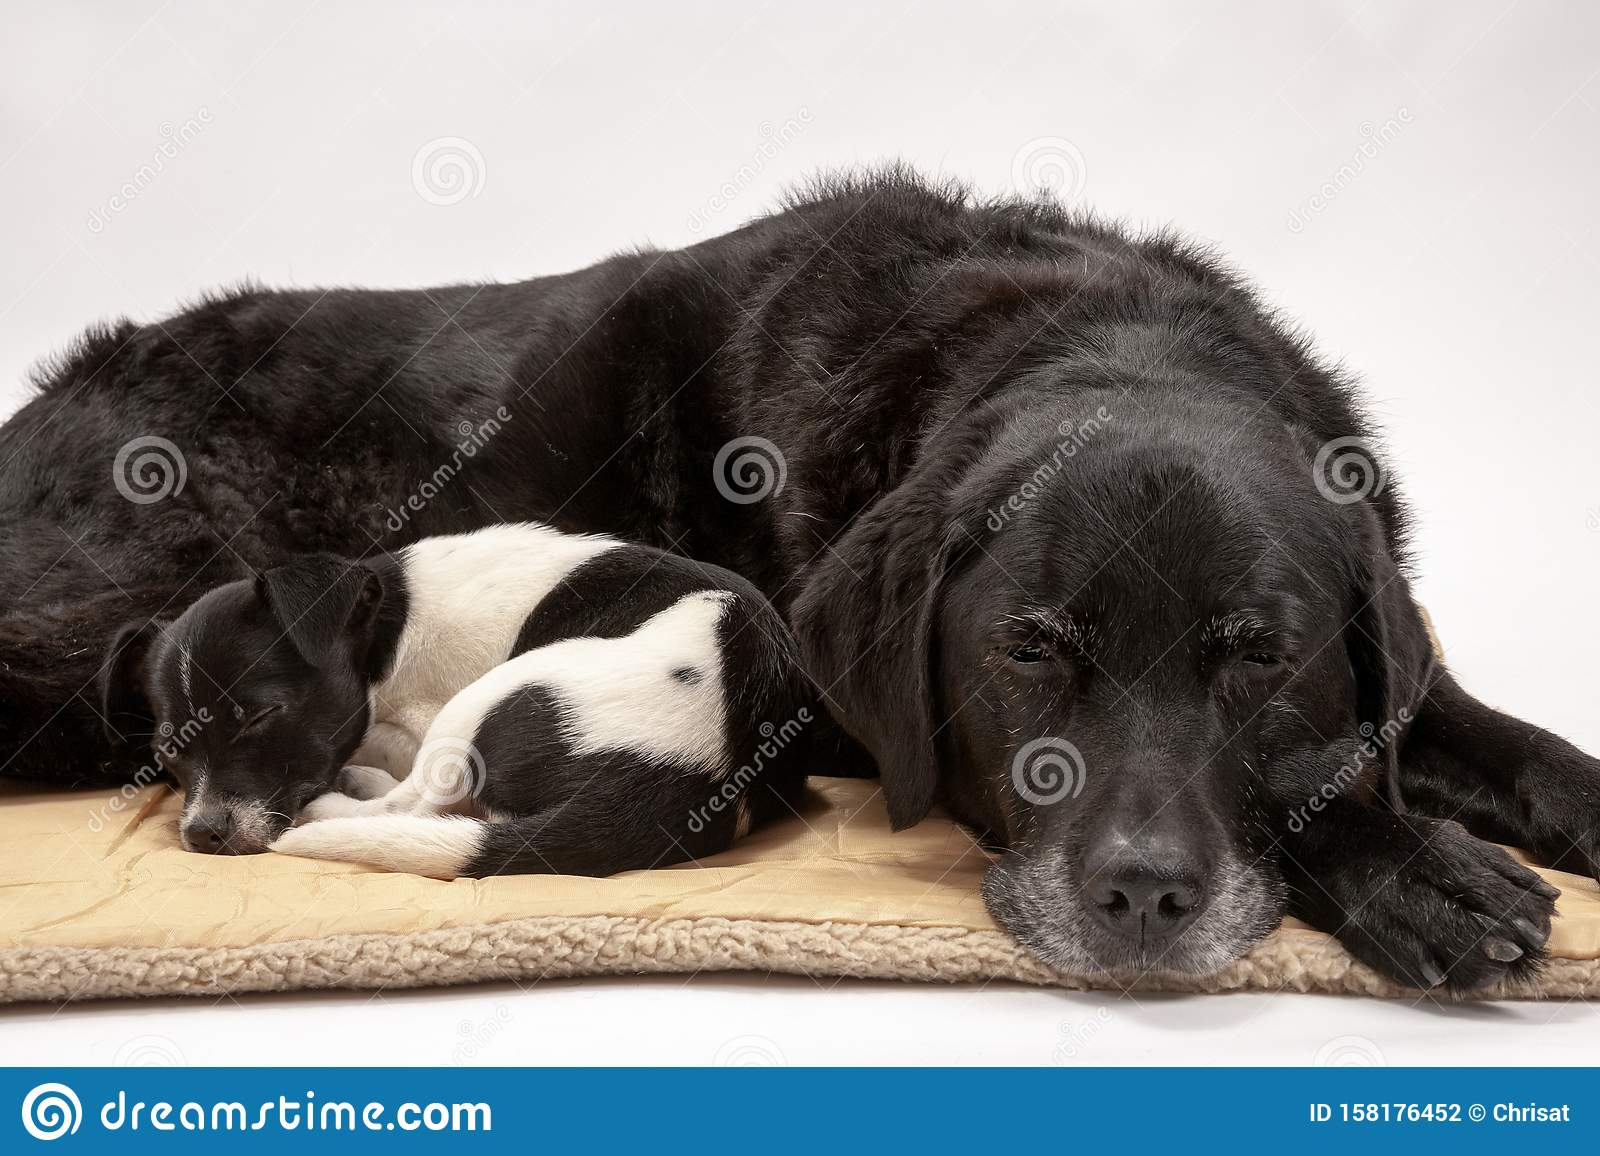 An elderly black labrador and her new 3 month old Jack Chi cross puppy friend